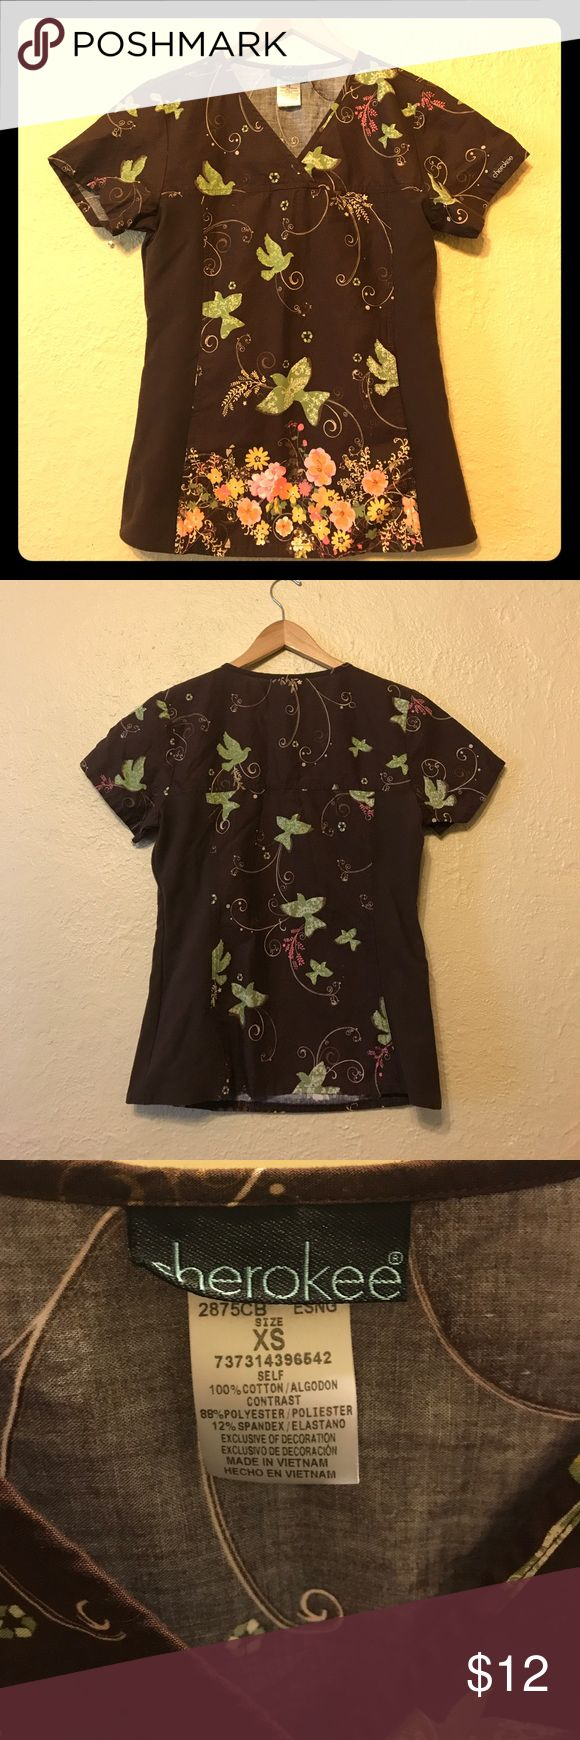 NWOT Whimsical Cherokee Scrub Top Scrub top by Cherokee. Brown with whimsical flowers and birds. Soft and stretchy side panels.  Never worn. I worked at a scrubs store for a few months, bought way too many, and never even wore most of them.  I have the pants to match this as well. I will give a discount if you buy both. Cherokee Tops